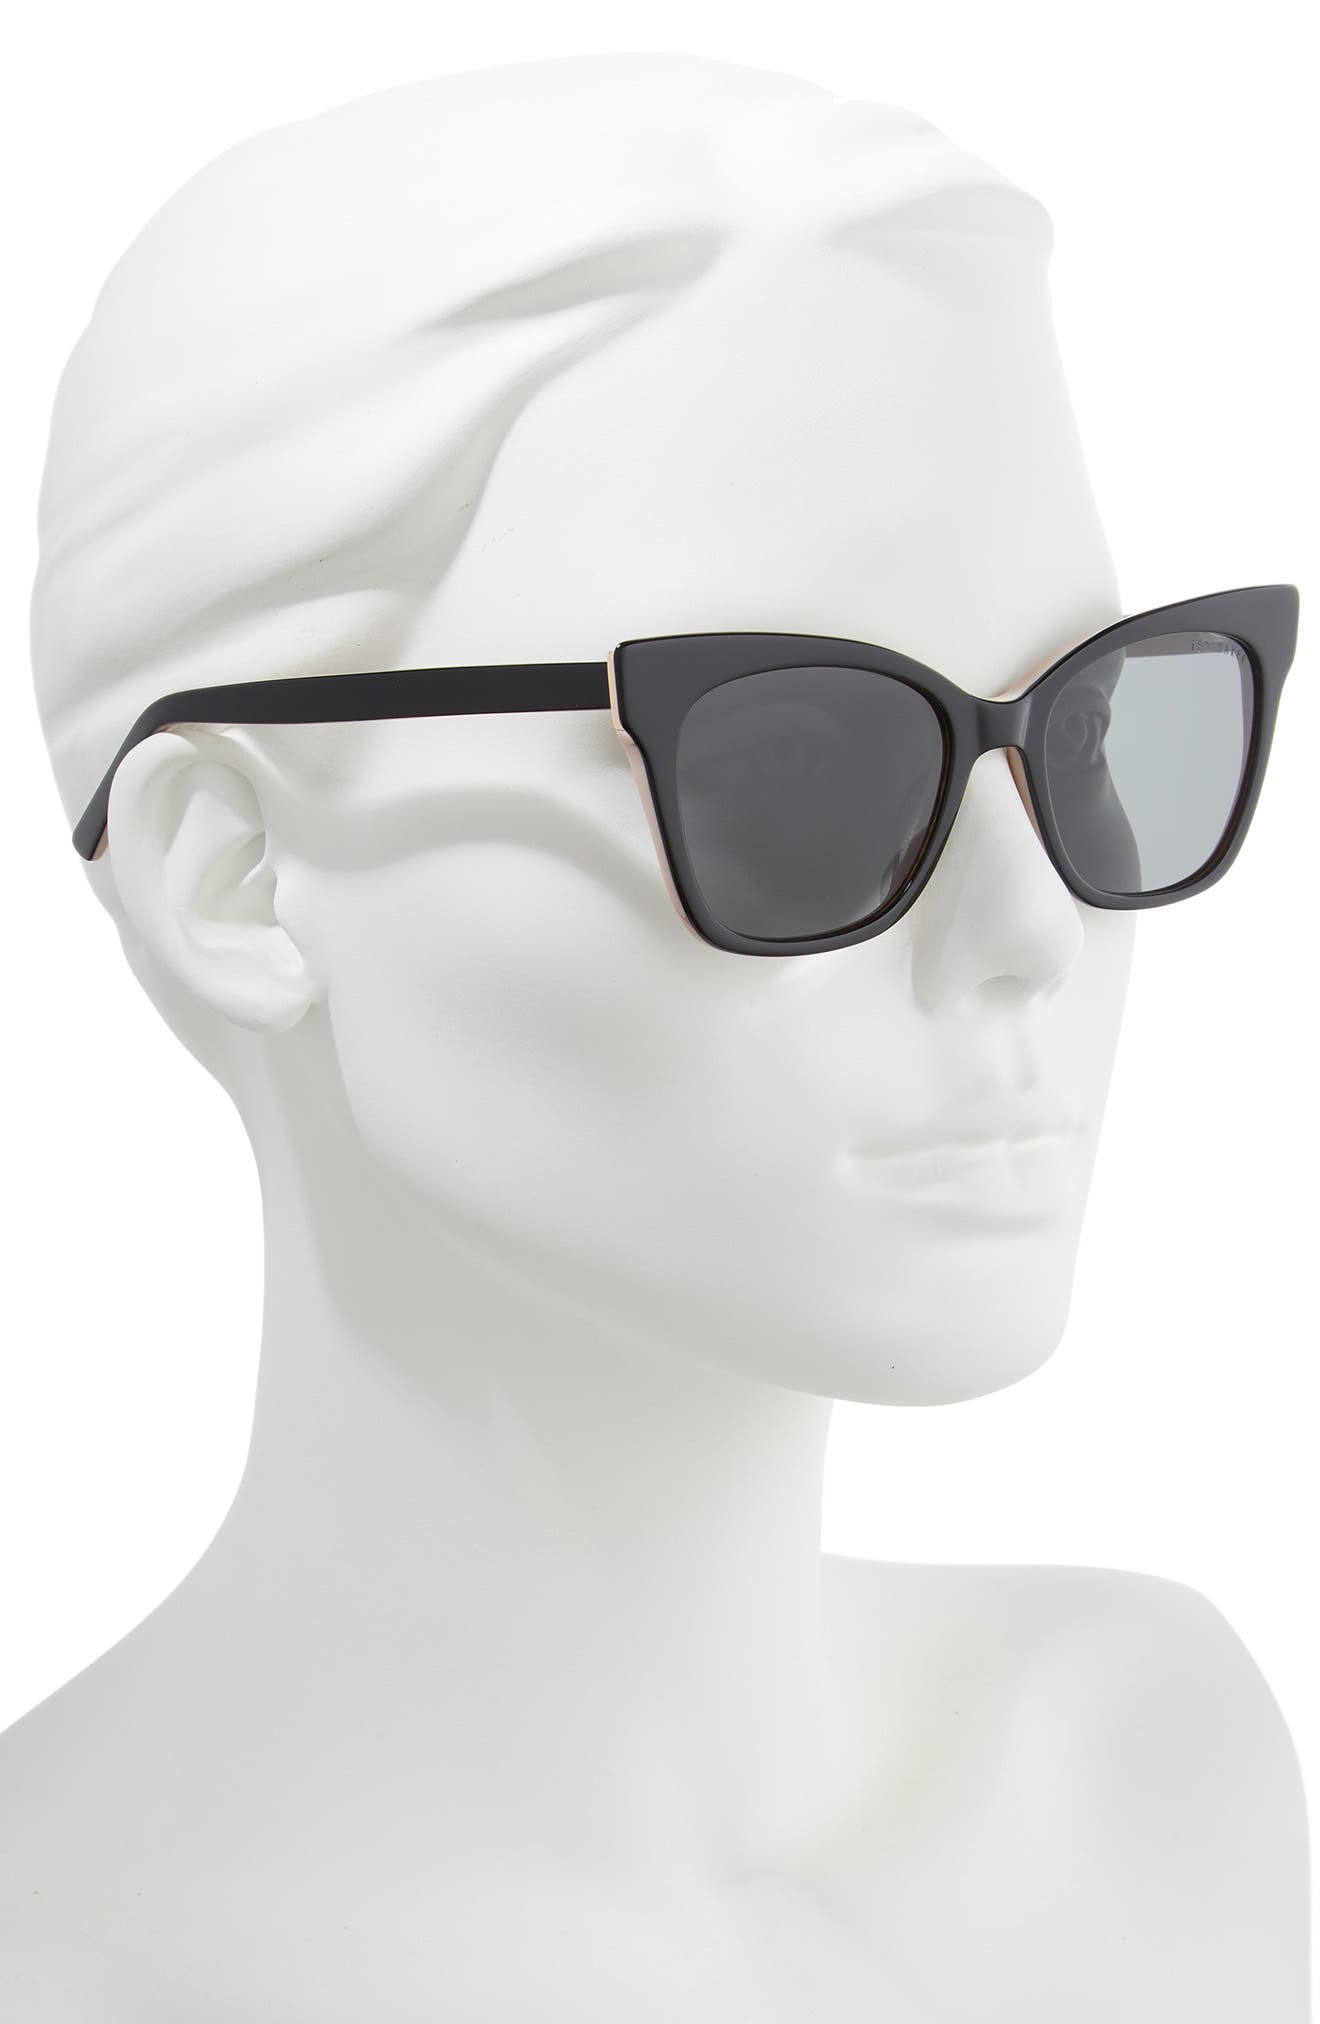 53mm Cat Eye Sunglasses,                             Alternate thumbnail 2, color,                             BLACK